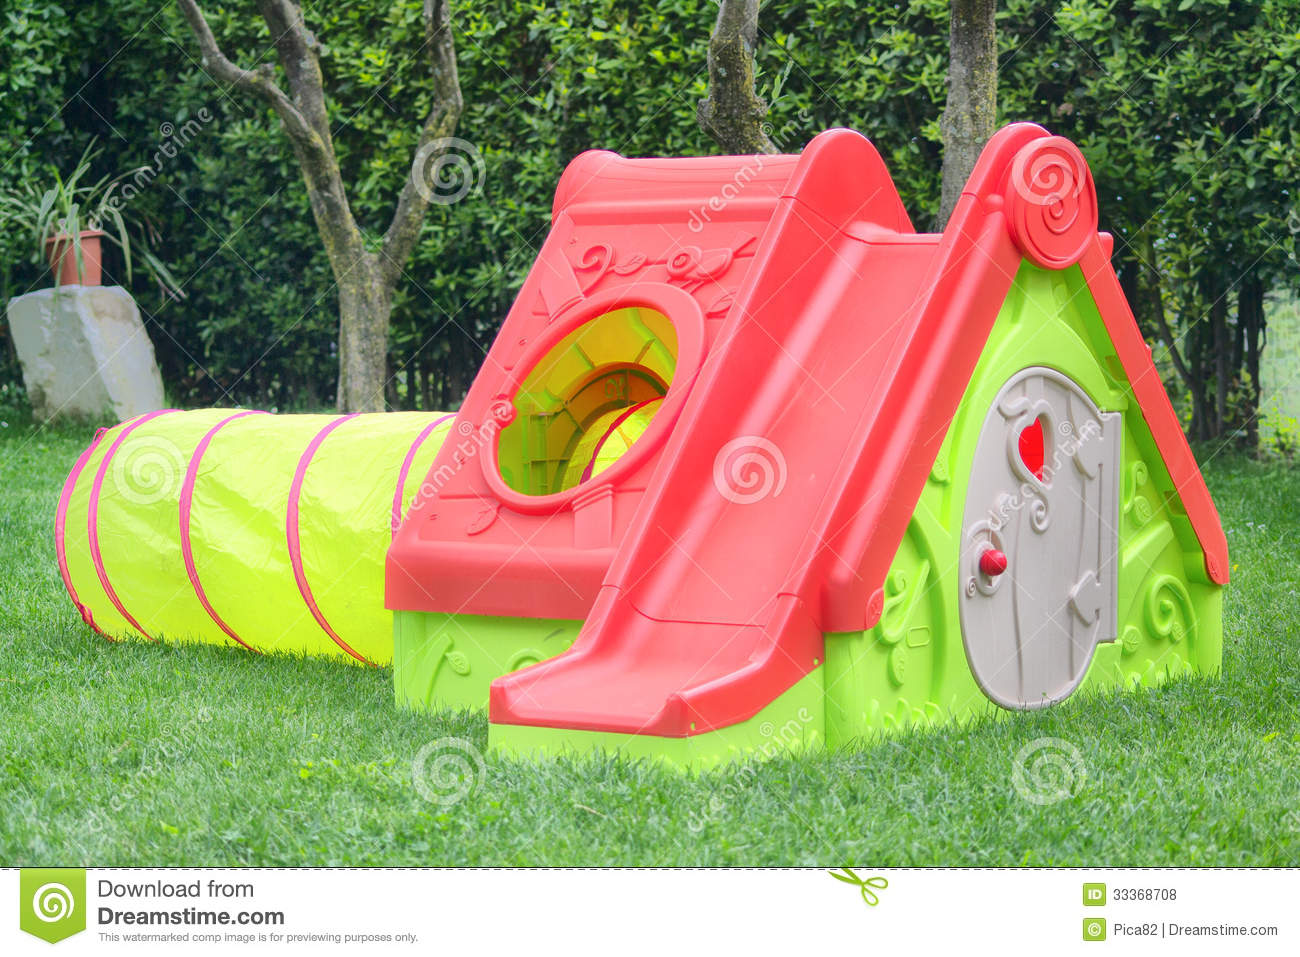 Playhouse with slide royalty free stock photos image for Free playhouse plans with slide